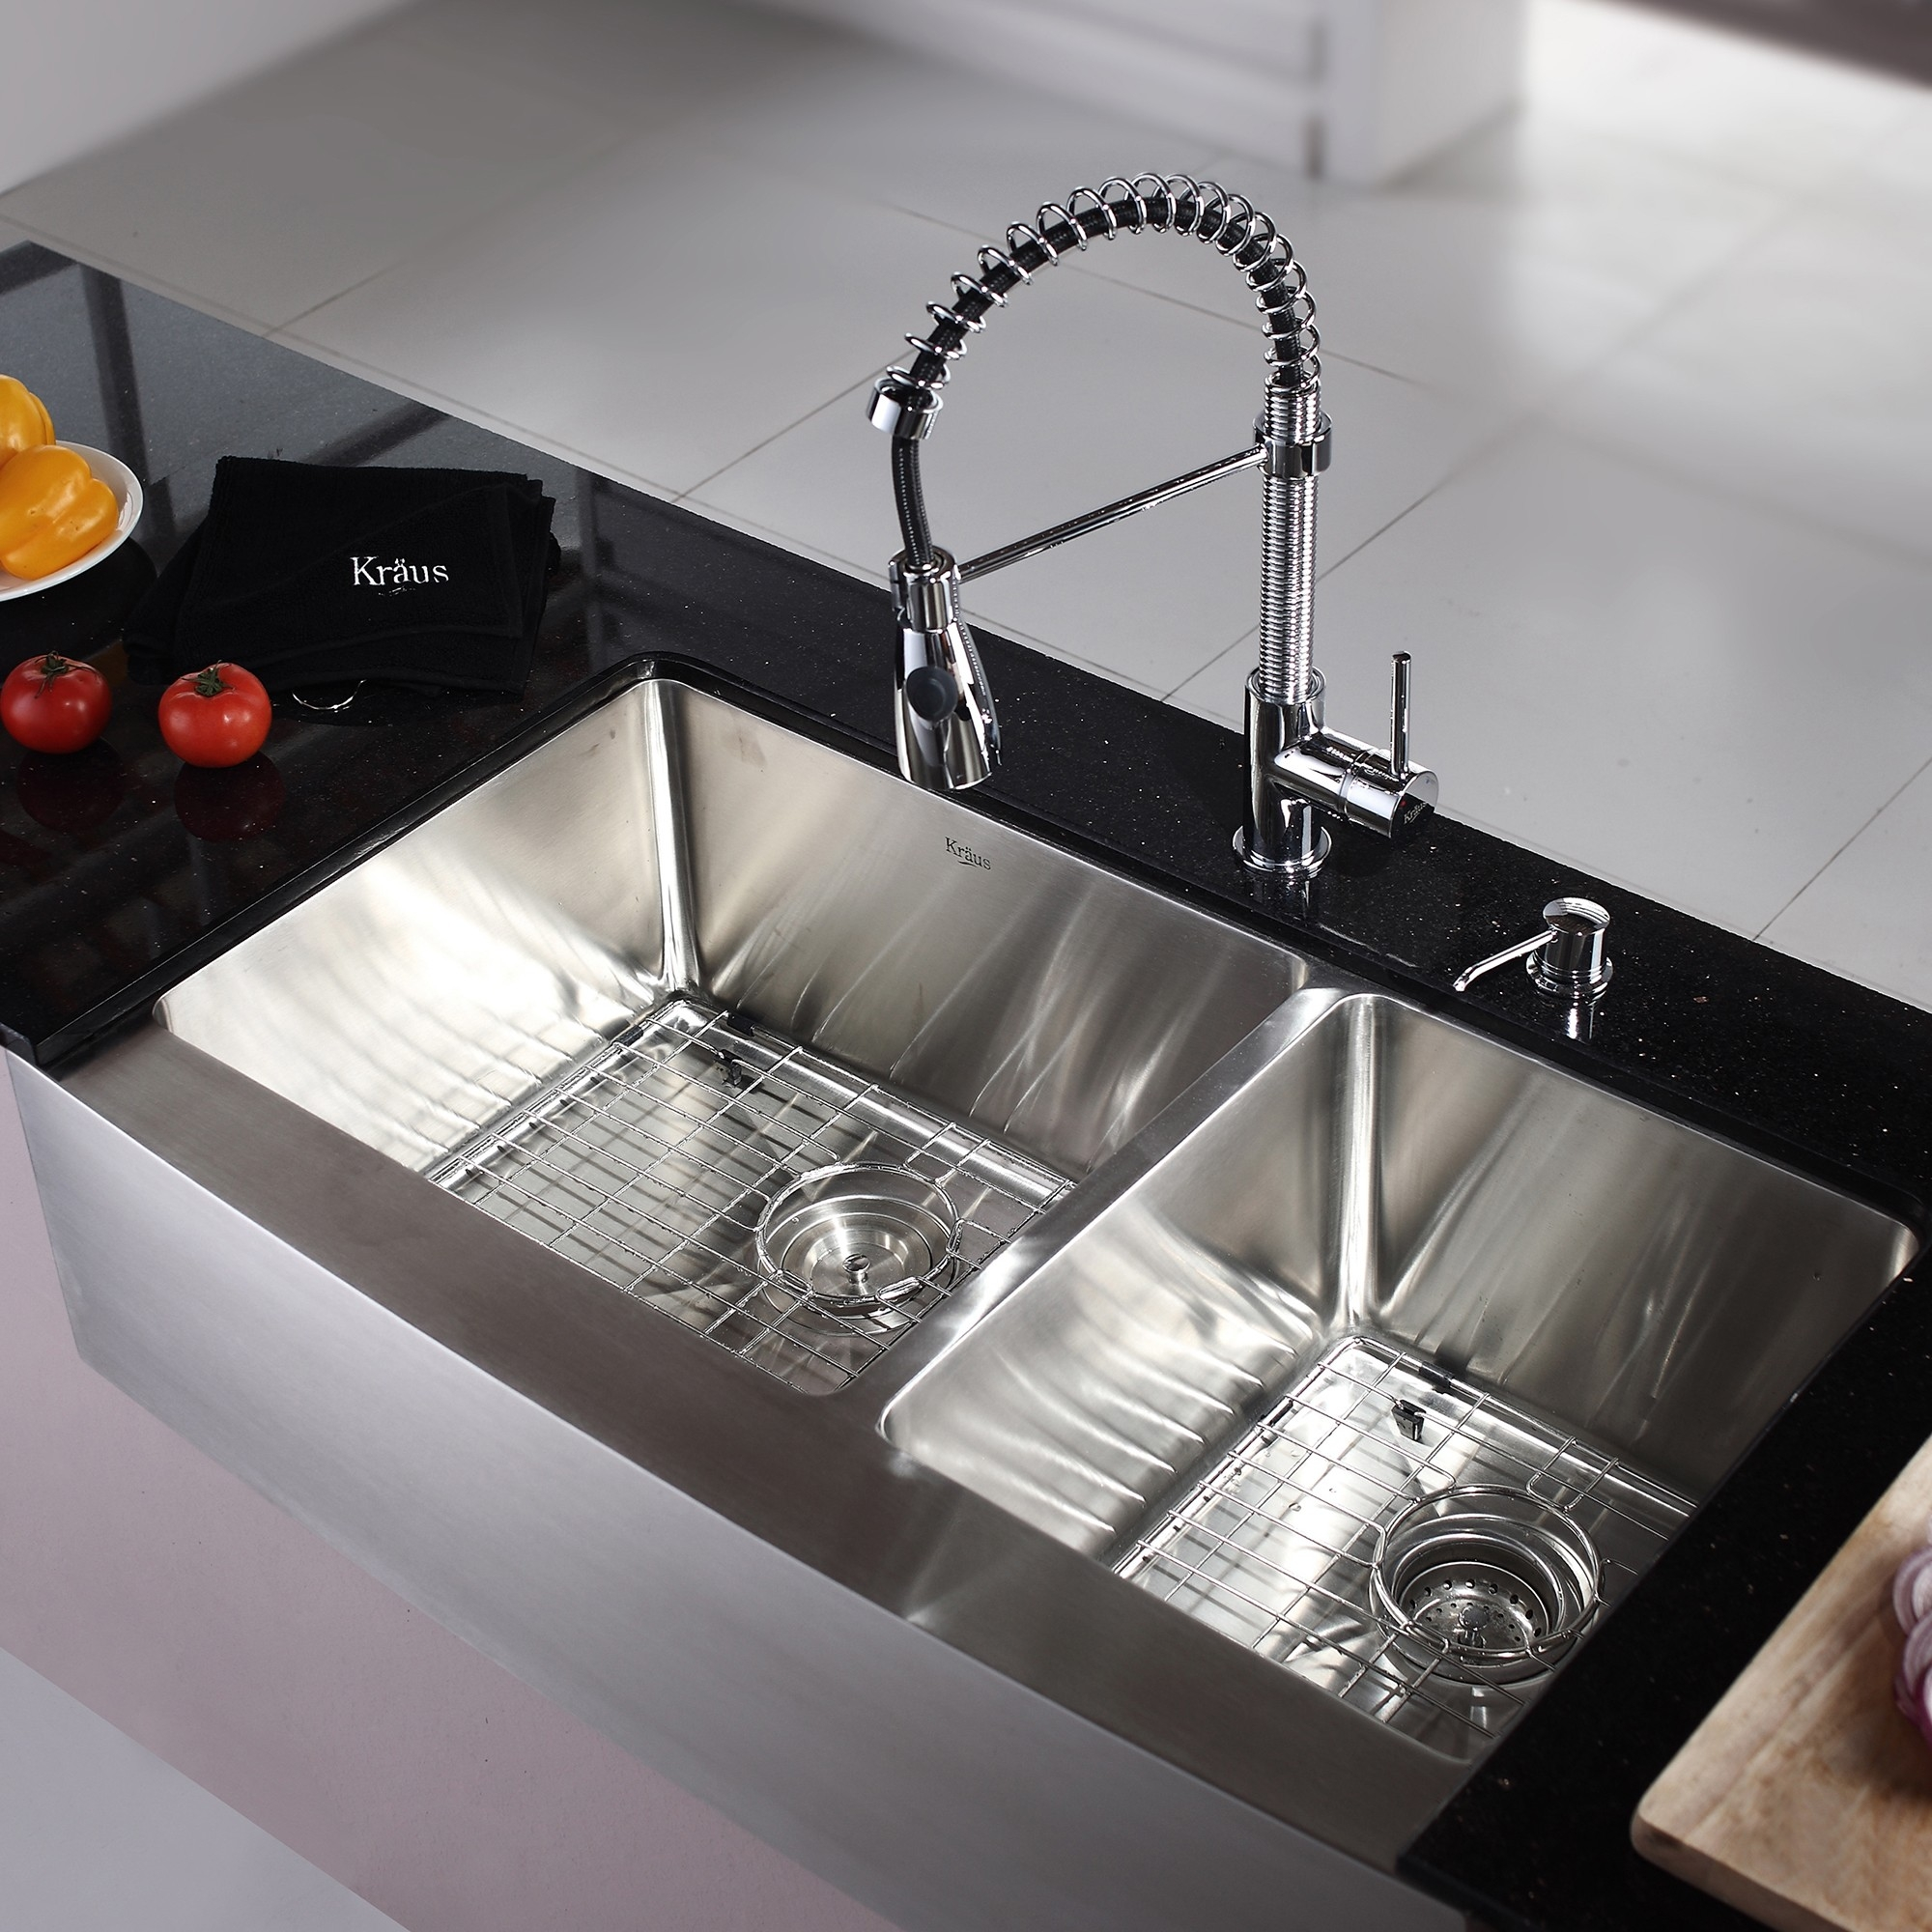 Ideas, one kitchen sink with two faucets one kitchen sink with two faucets kitchen convenient cleaning with stainless steel farm sink 2000 x 2000  .